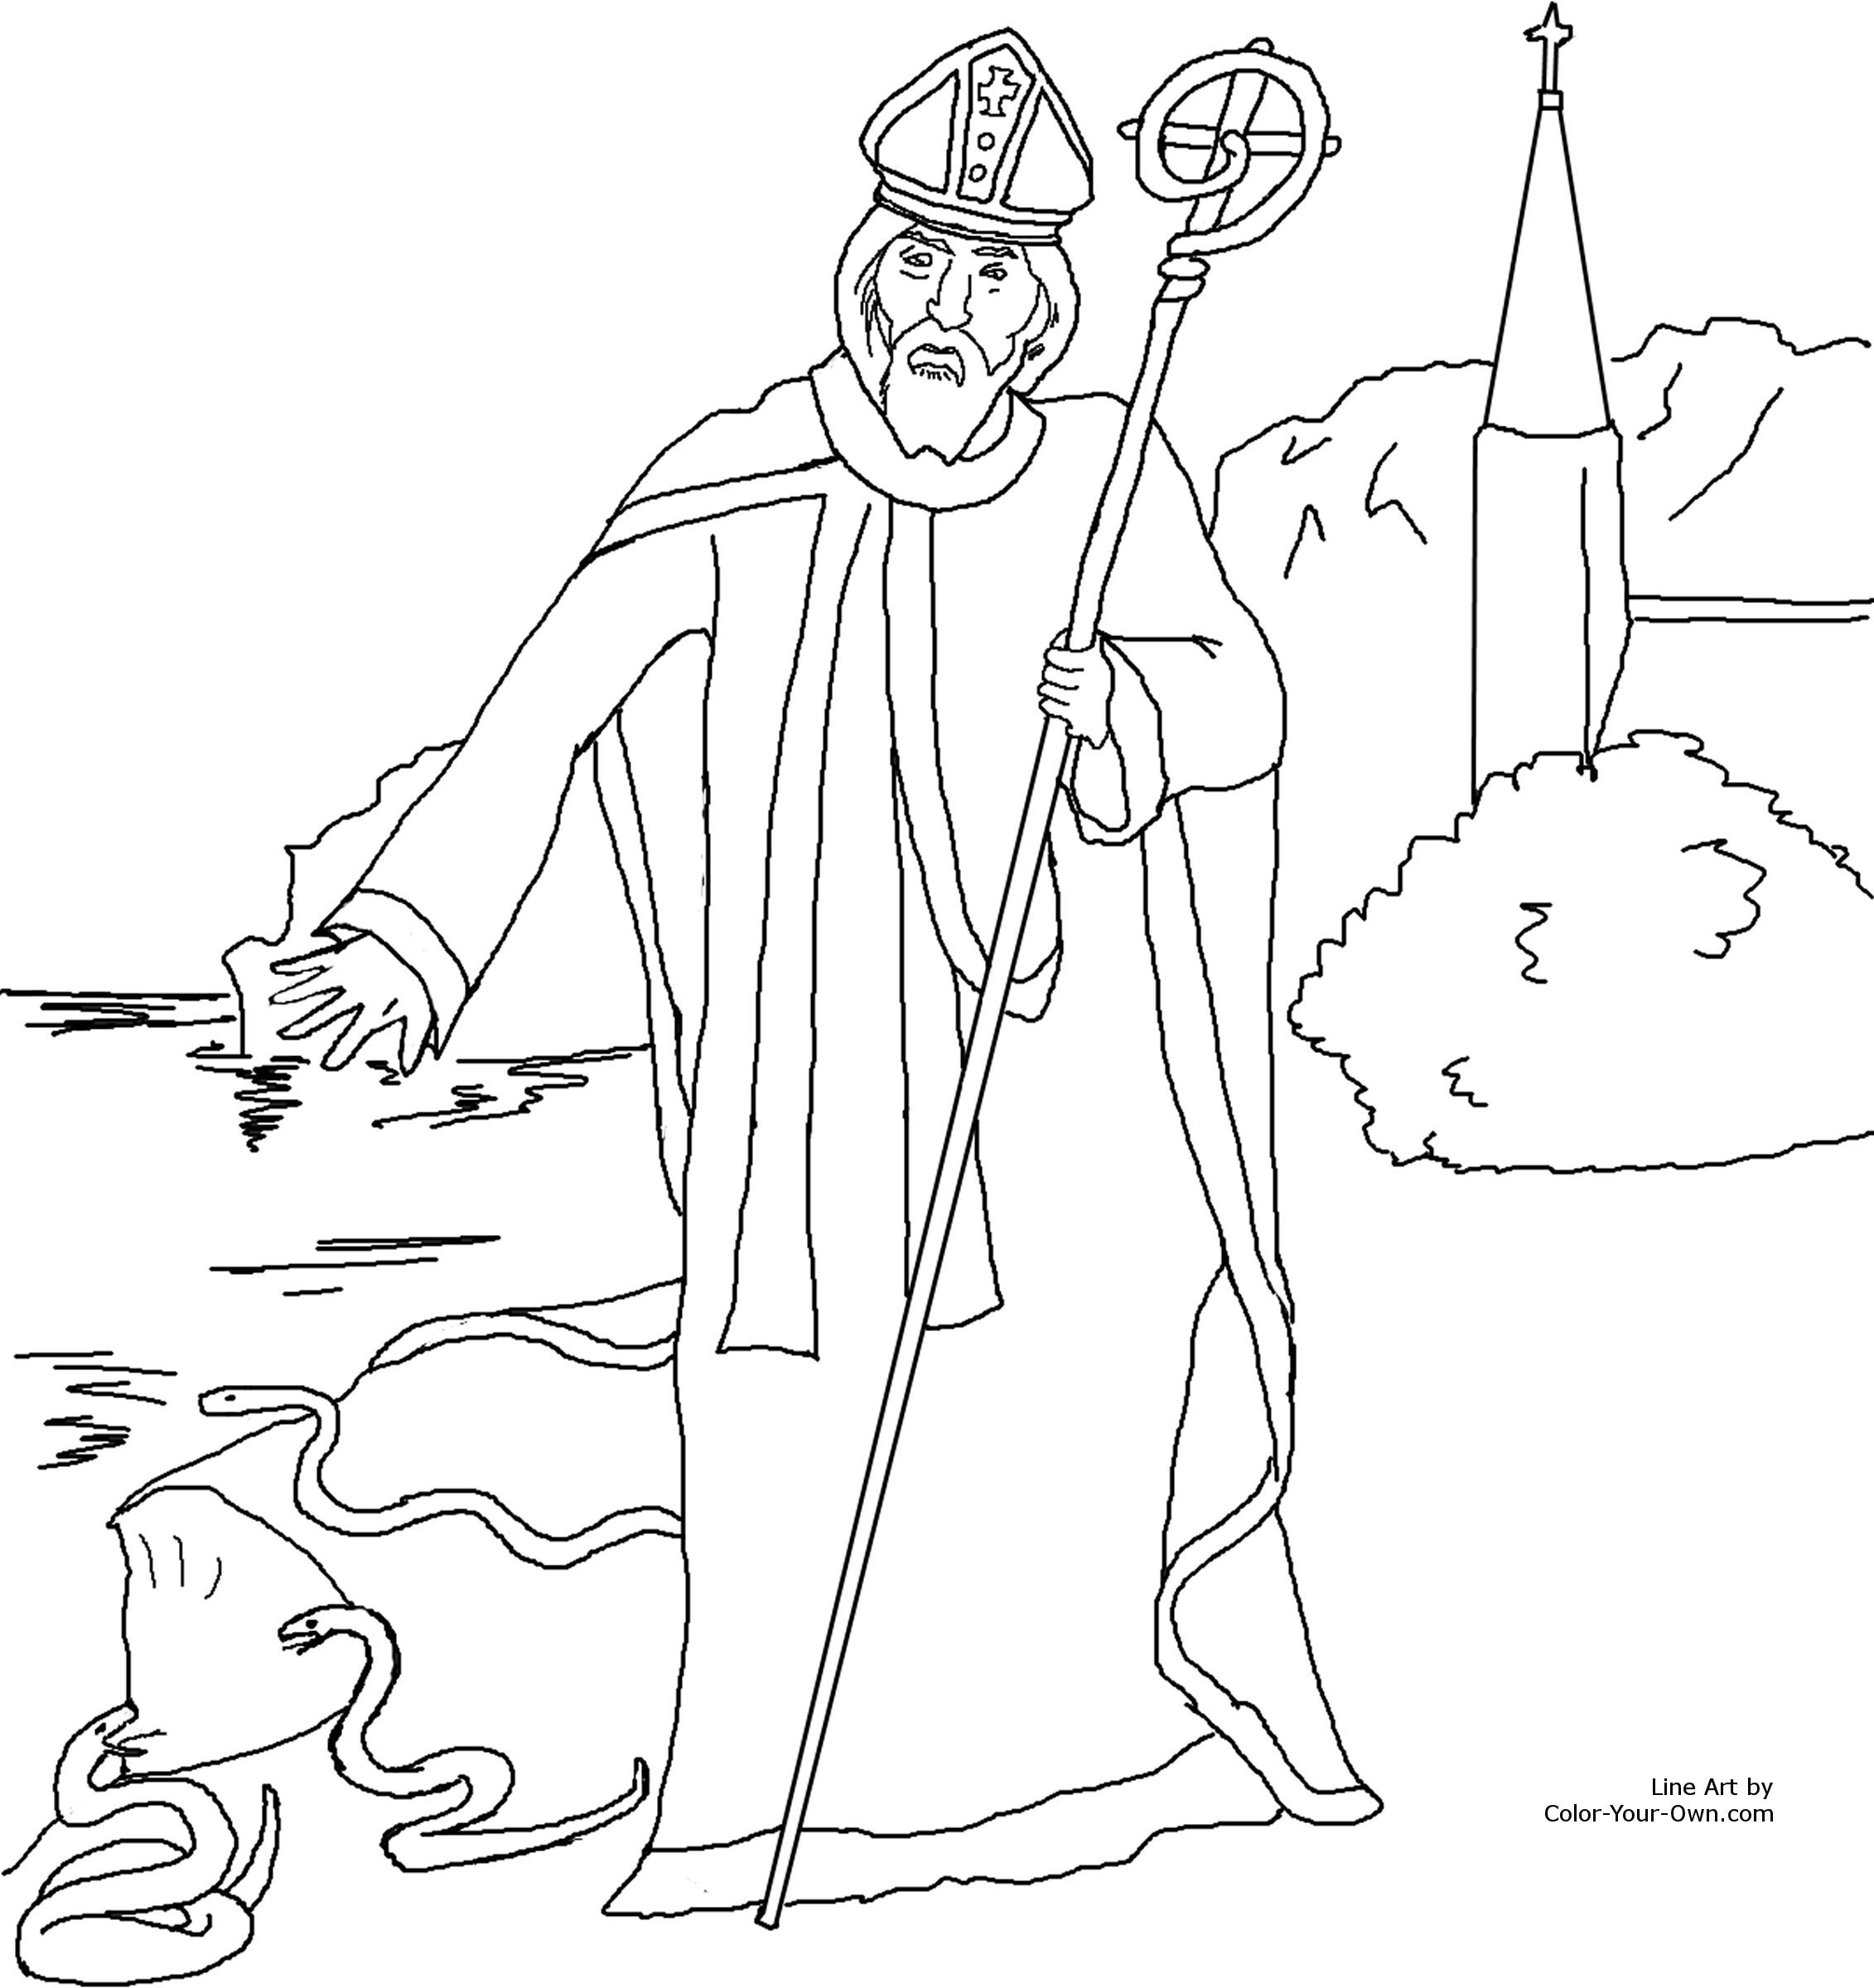 Saint Patrick Driving Out The Snakes Of Ireland Catholic Coloring Page Feast Day Is March 17th